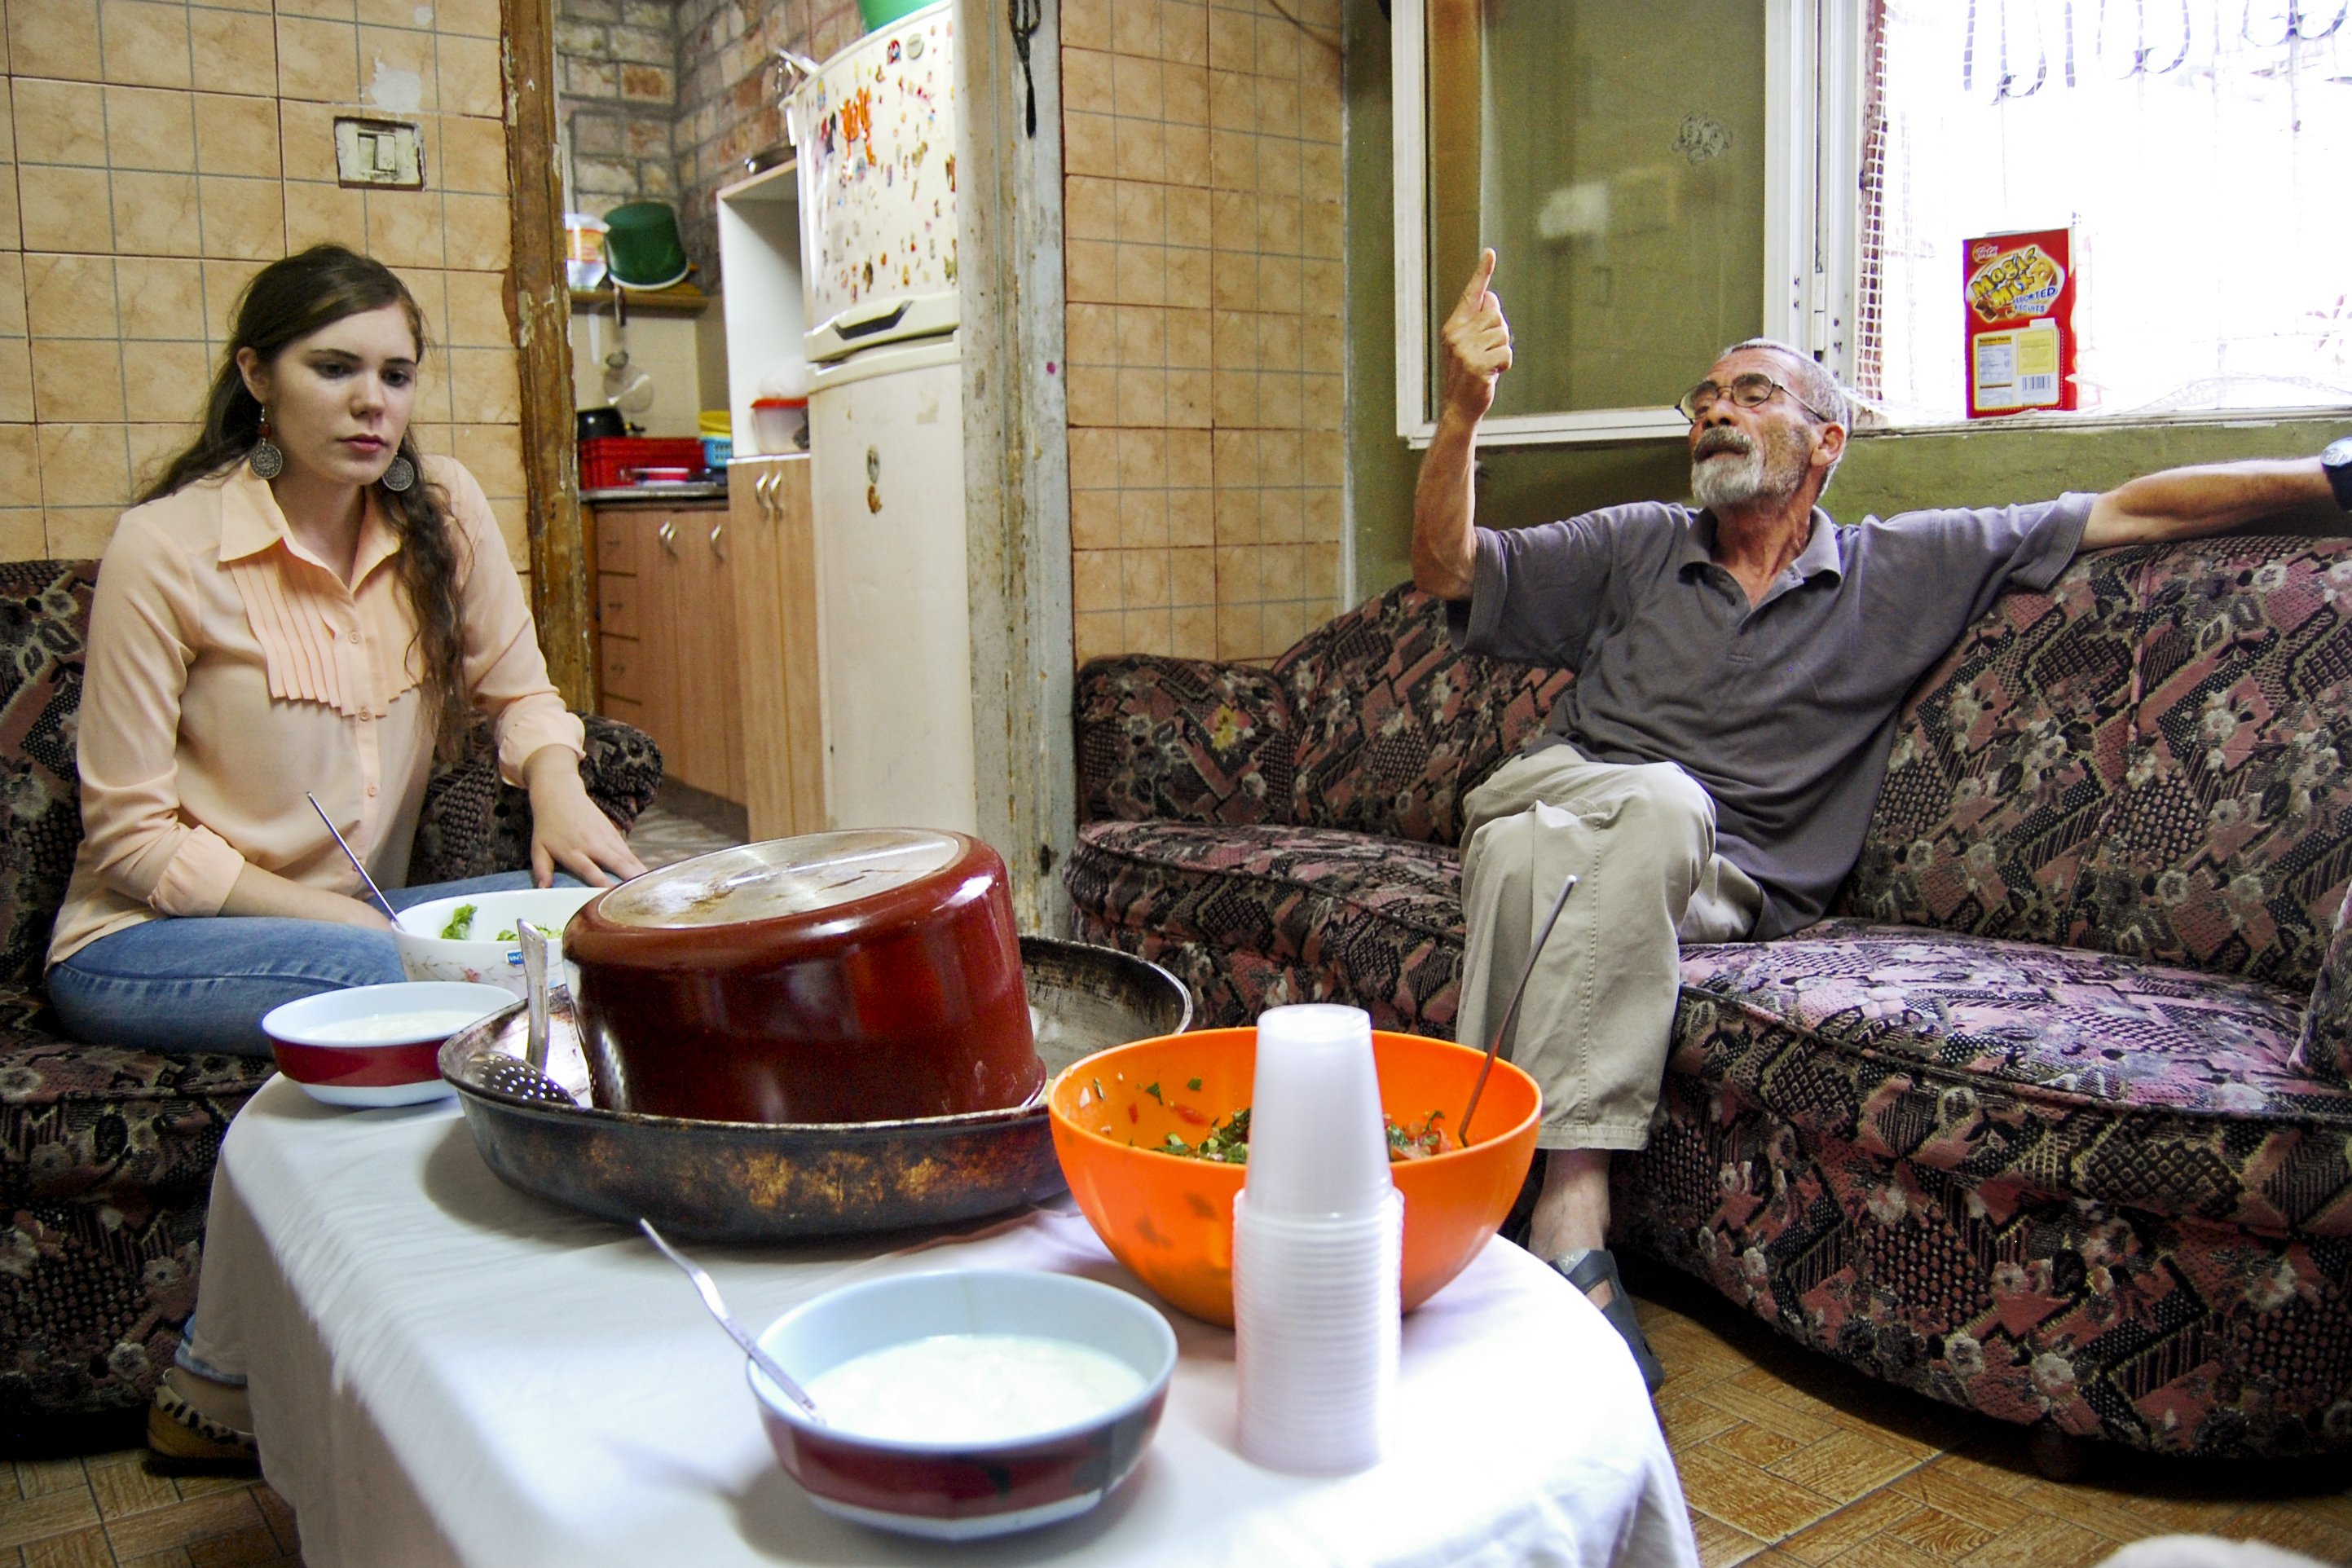 Outteineh's daughter Hiba, 21, and husband, Hattim, talk in the family's living room as sunset nears. The maqluba pot (center) is turned upside down in the serving dish, a trick to keep it warm until the Ramadan fast can be broken.